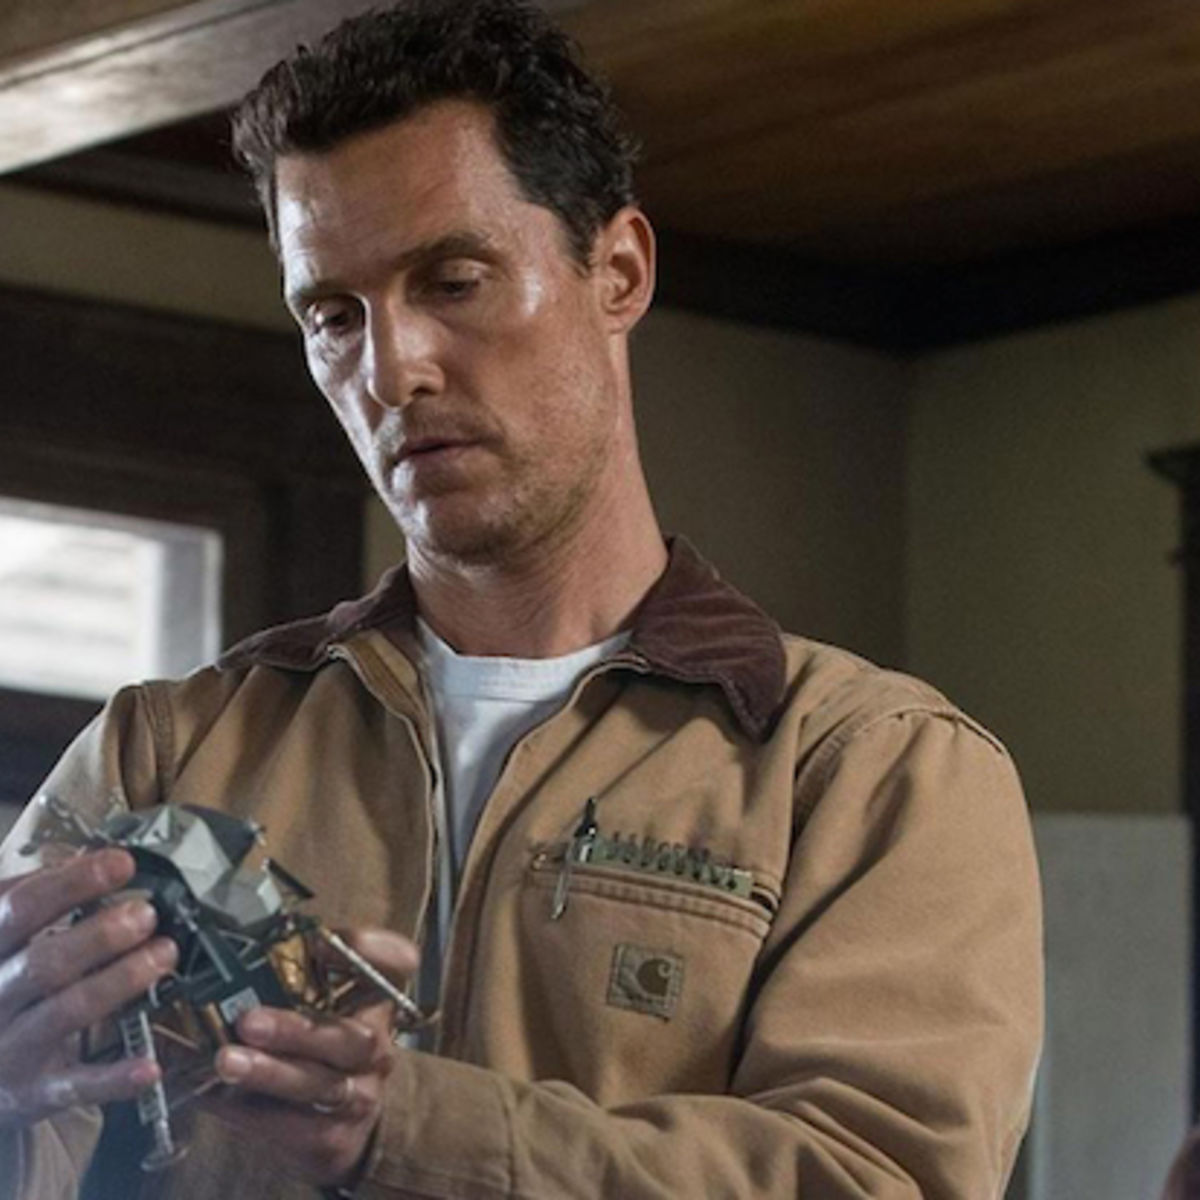 Interstellar-McConaughey-holding-model-spacecraft.jpg